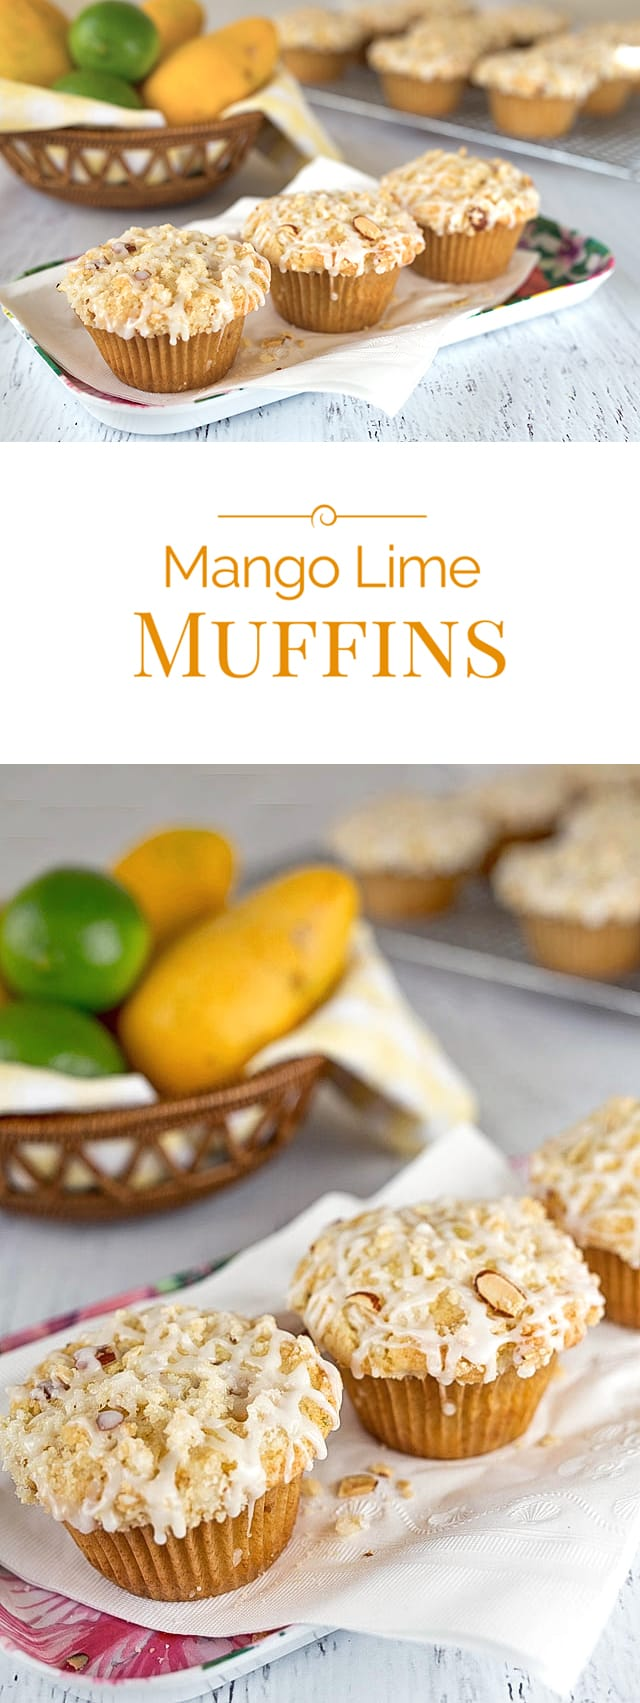 Mango-Lime-Muffins-Collage-2-Barbara-Bakes